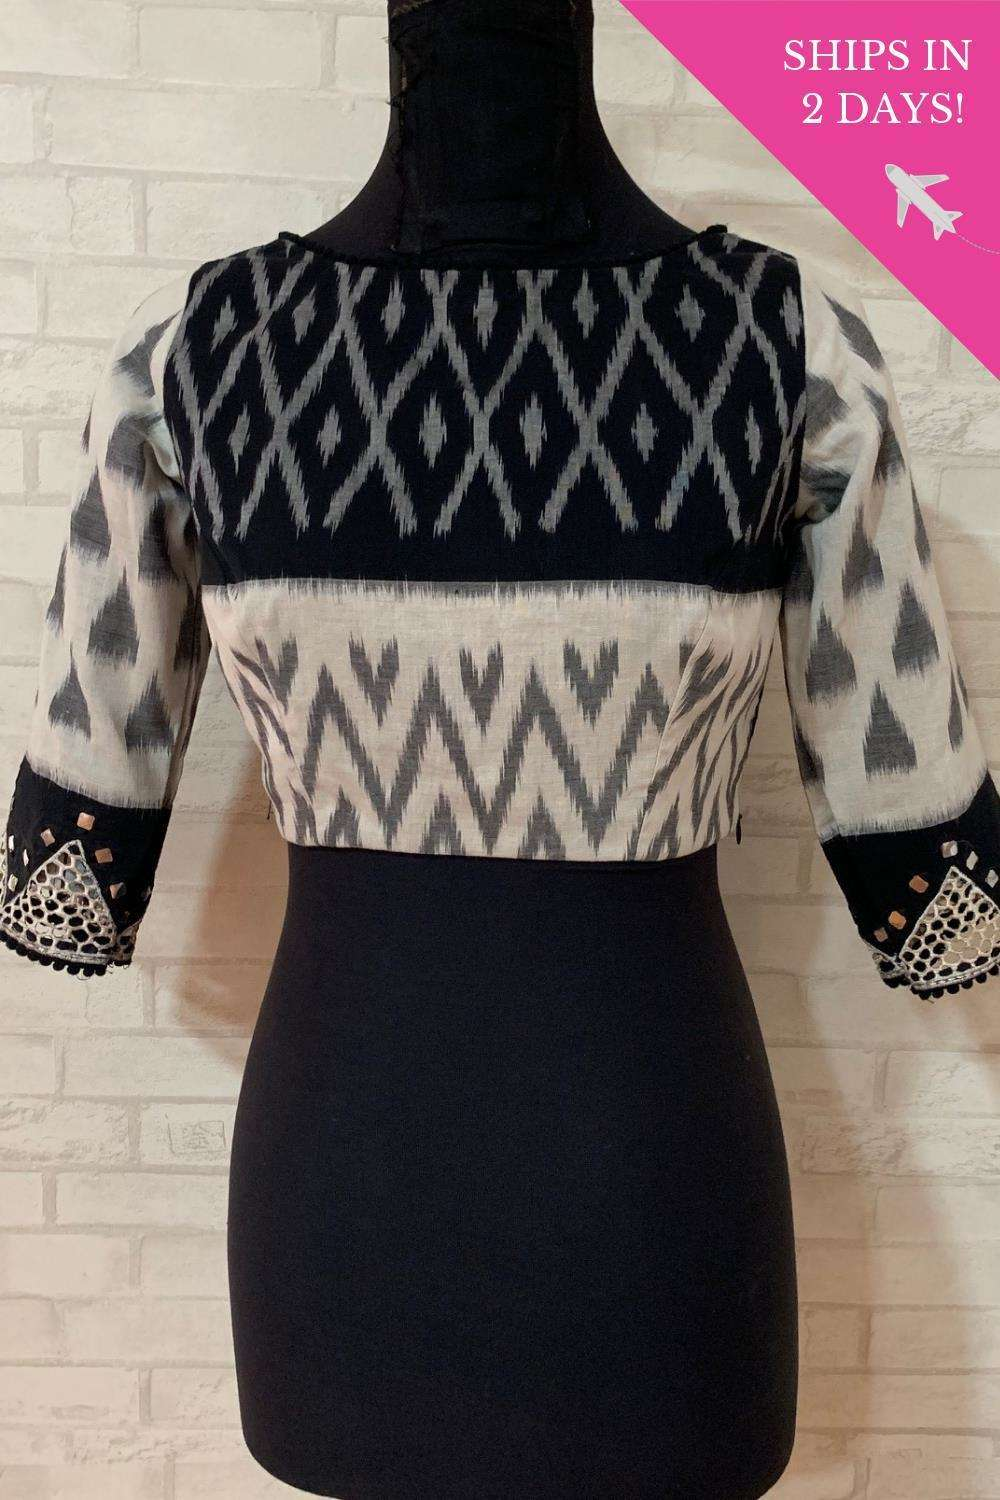 Black and white Ikat blouse with cutwork sleeves; Size: 36 - House of Blouse